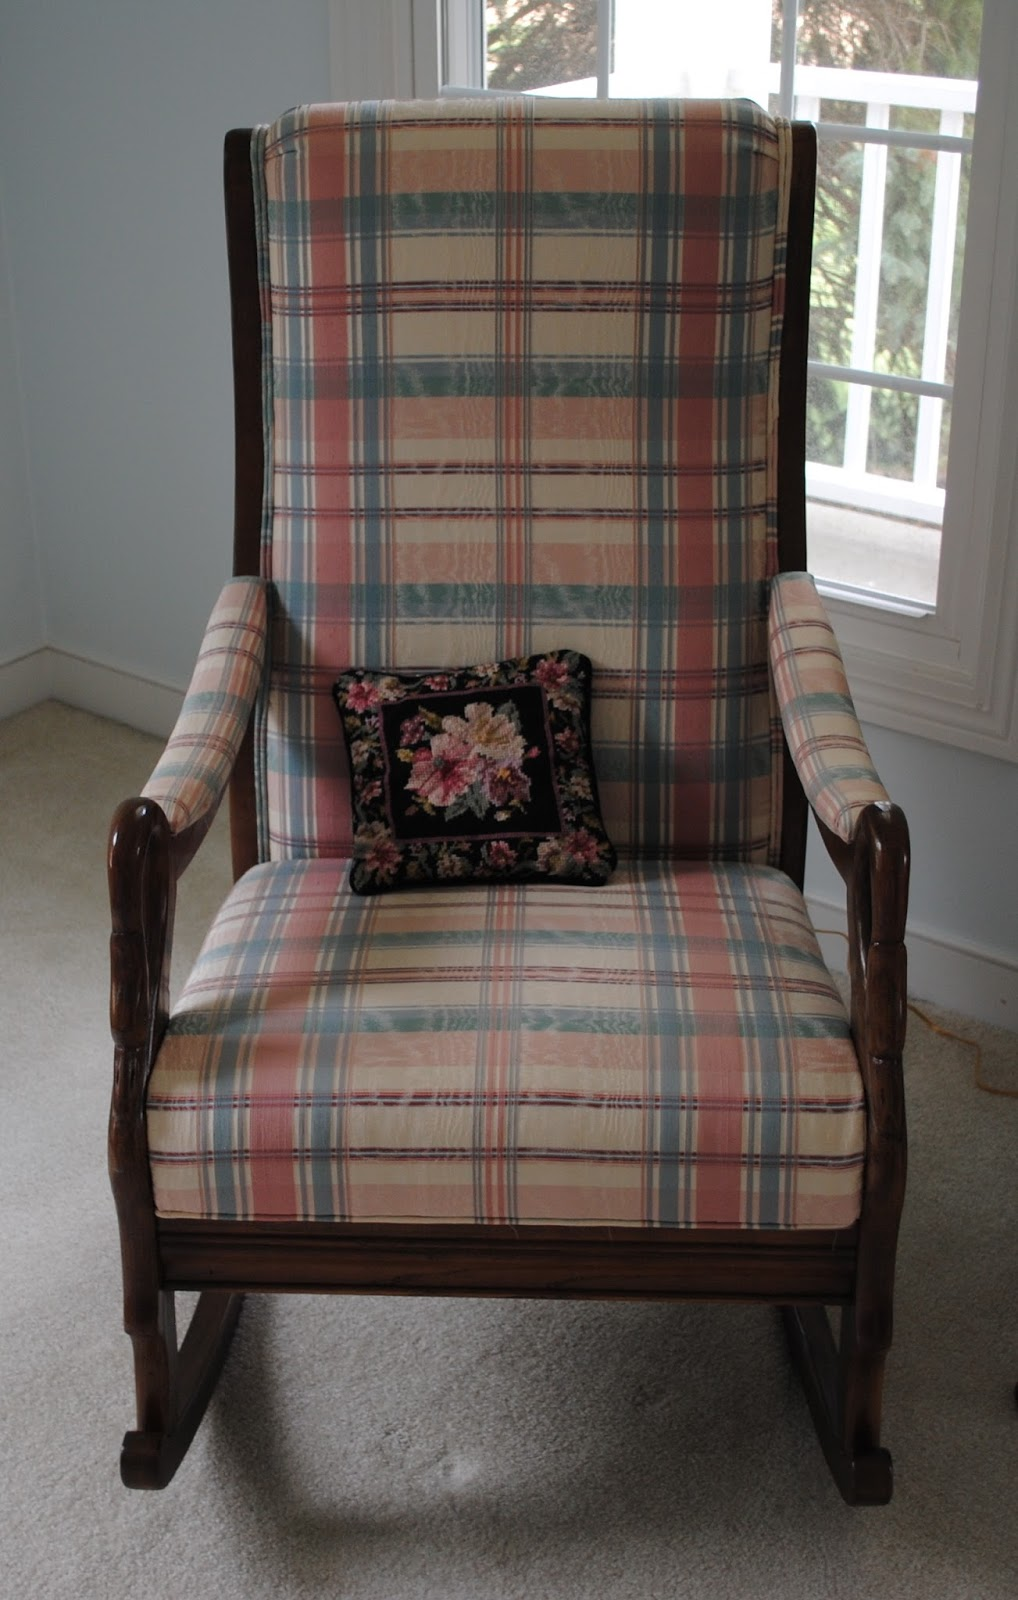 Cozy Cottage Slipcovers Mother Goose Slipcover